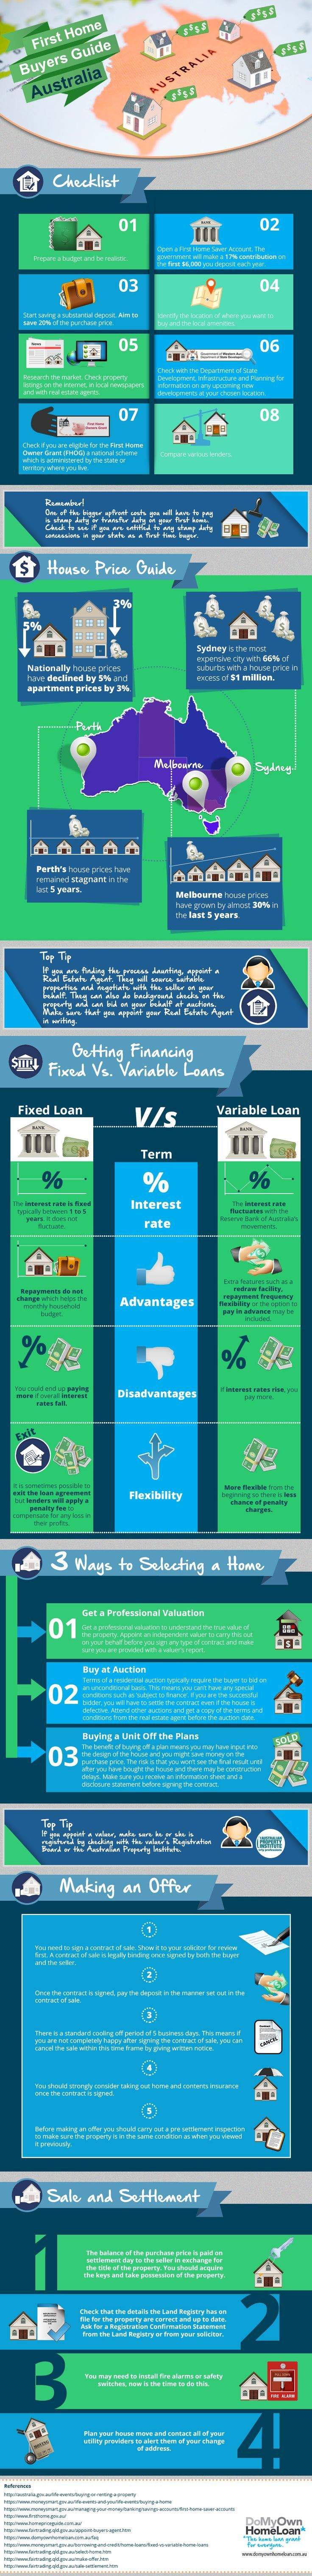 Facts about buying a home - Buying Your First Home Can Be A Daunting Task But We Ve Made It Easy With Our Quick Facts In The Infographic About First Home Buyers Guide In Australia